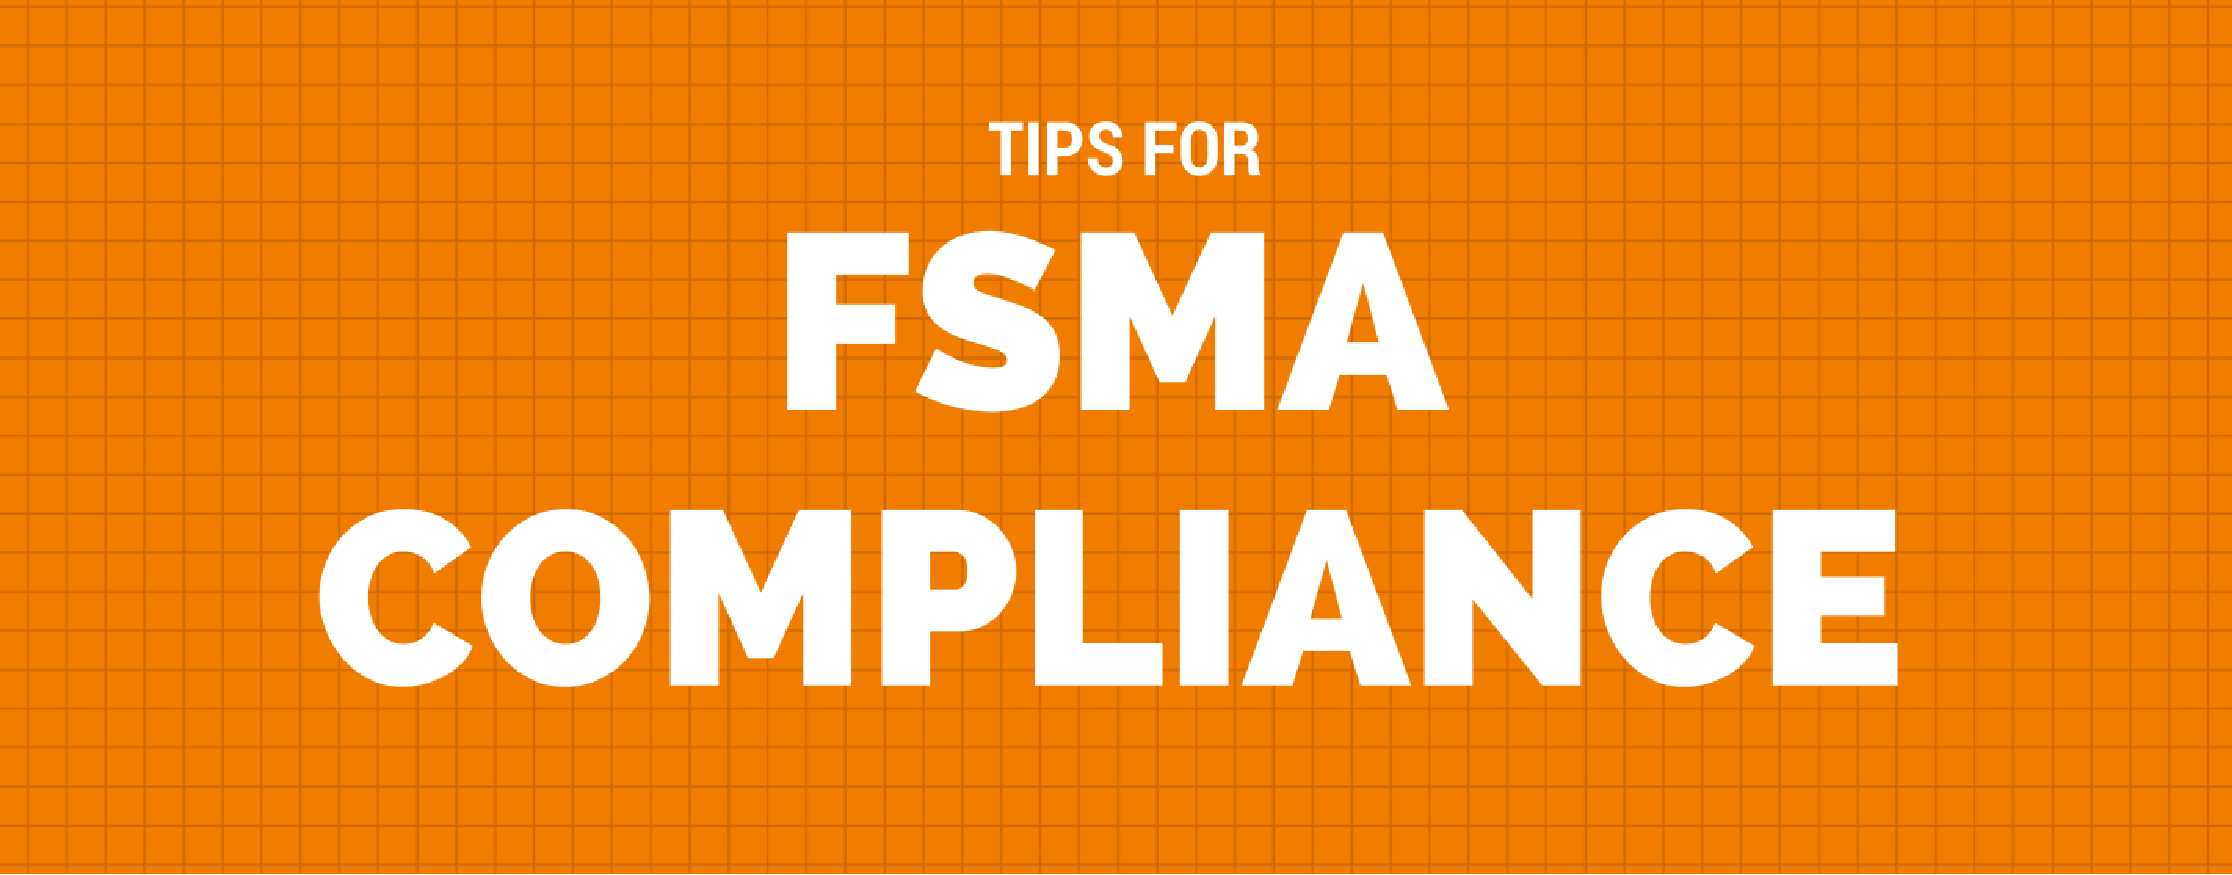 Practical Compliance Tips for FSMA from Top Food and Beverage Companies